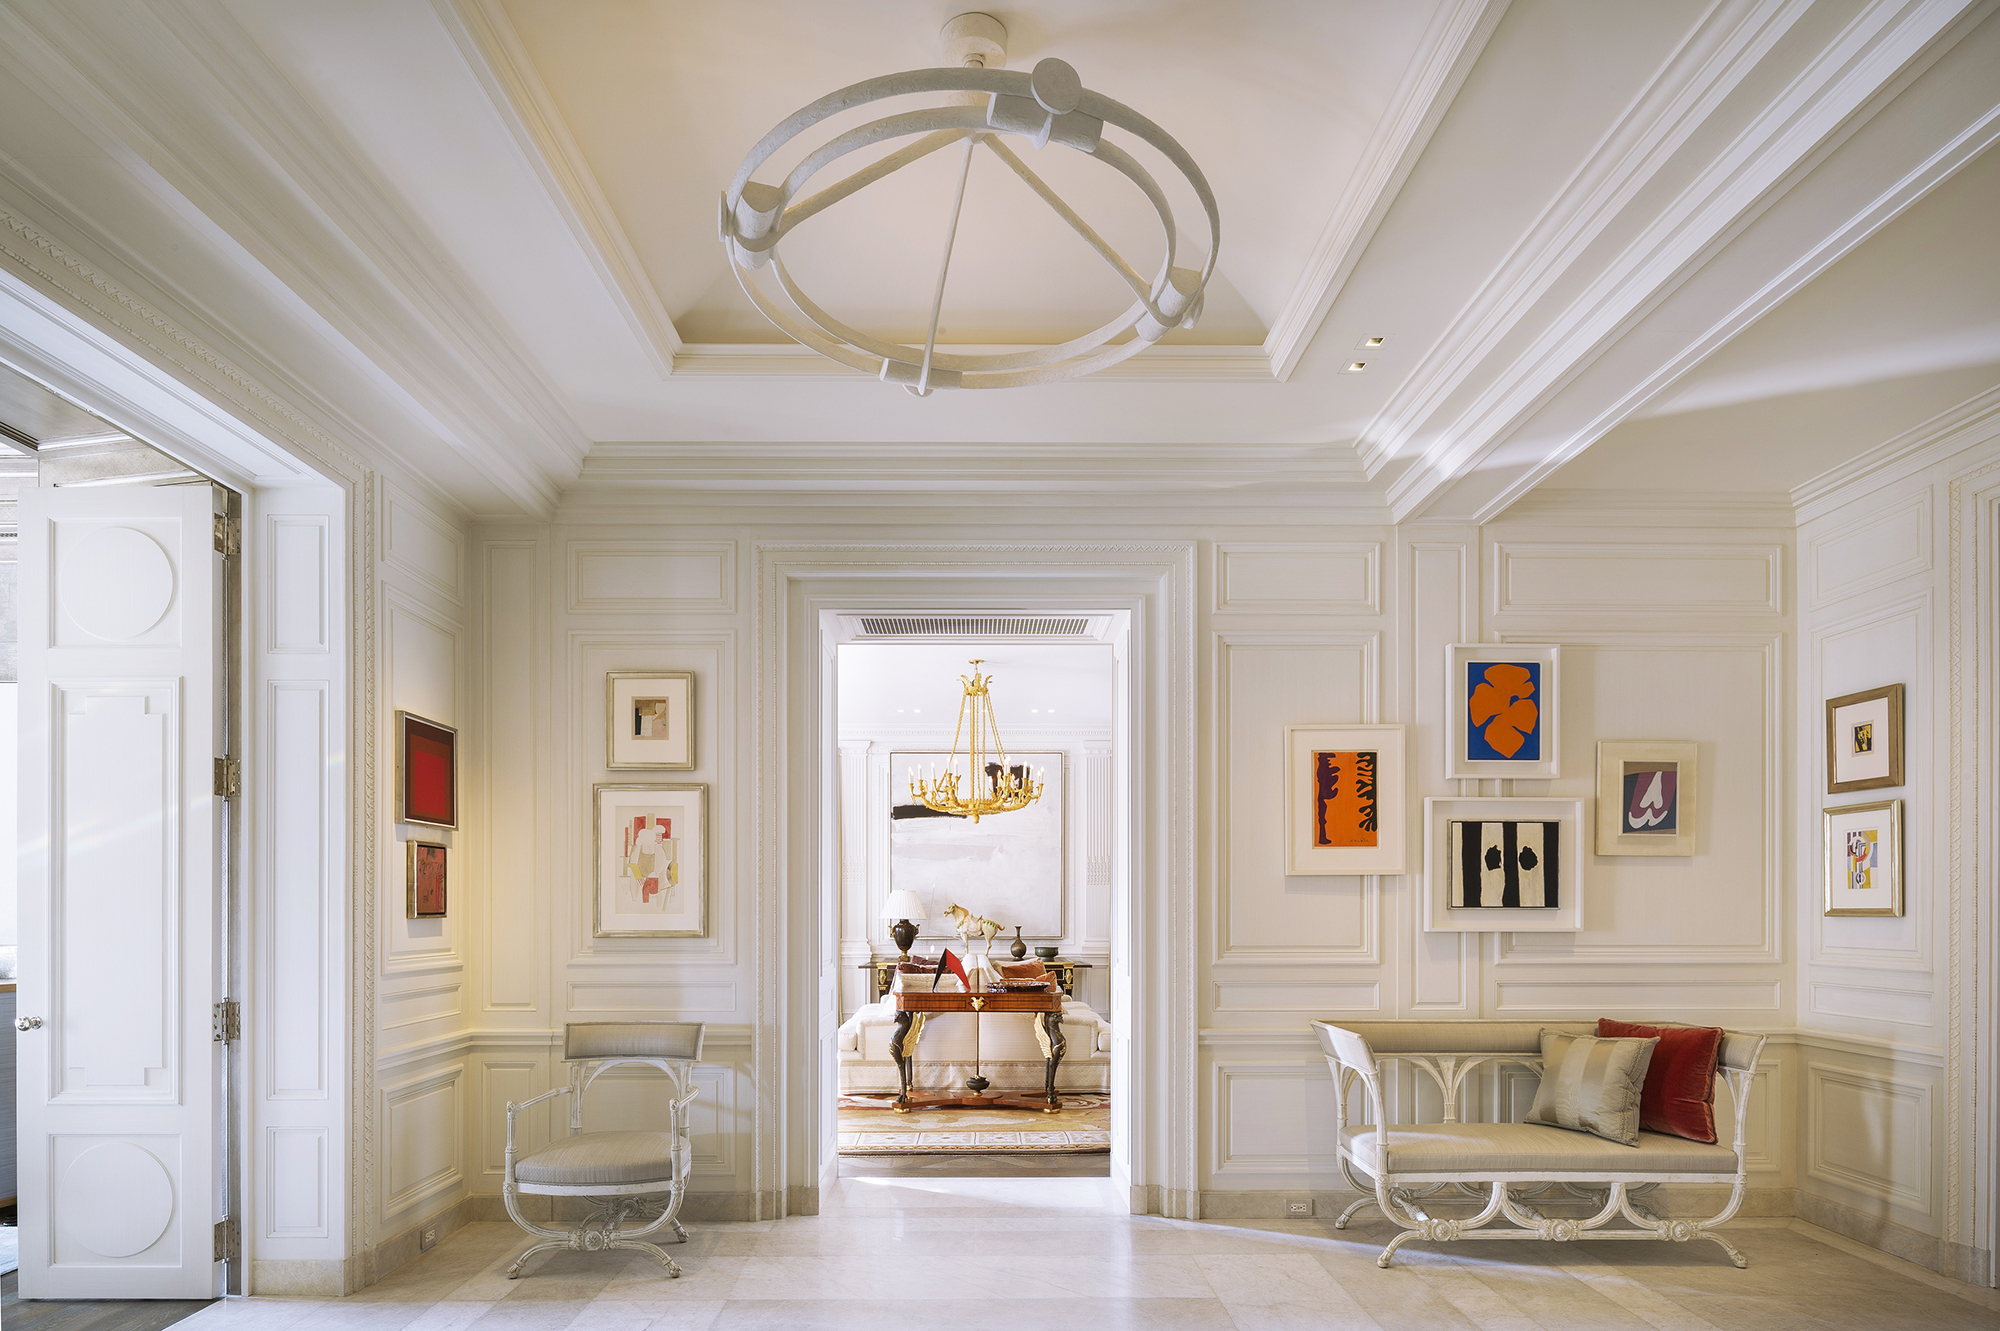 Understated neoclassicism for a New York duplex